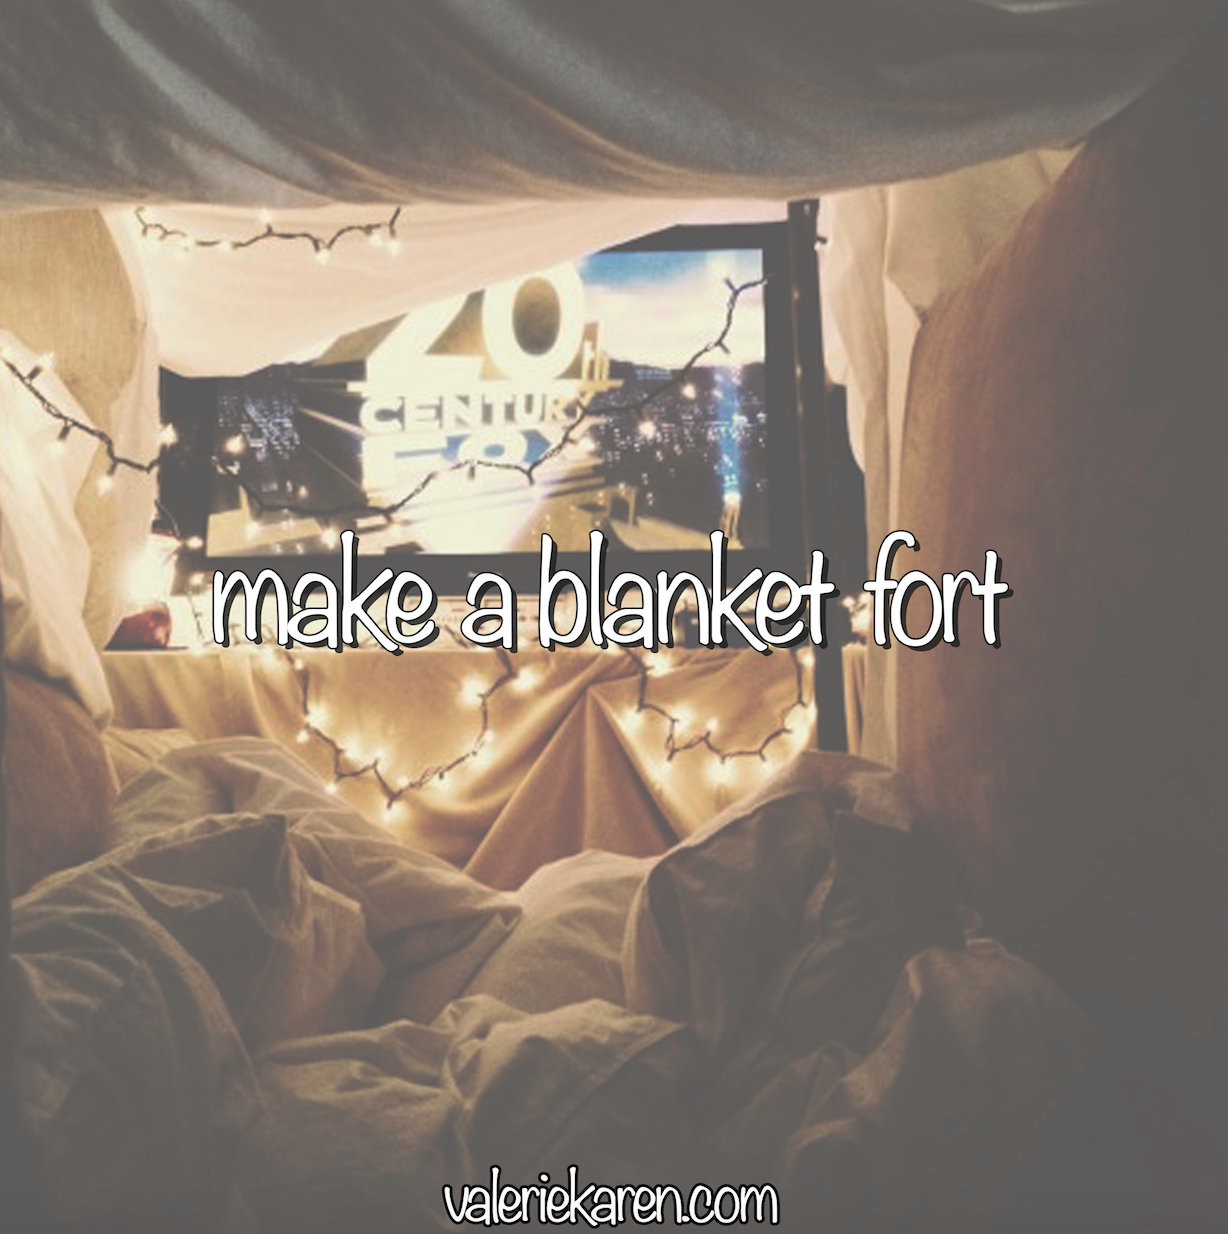 best unique 2018 summer bucket list ideas - - make a blanket fort! this is a fun & simple activity, perfect for relaxing summer days! #summerbucketlists